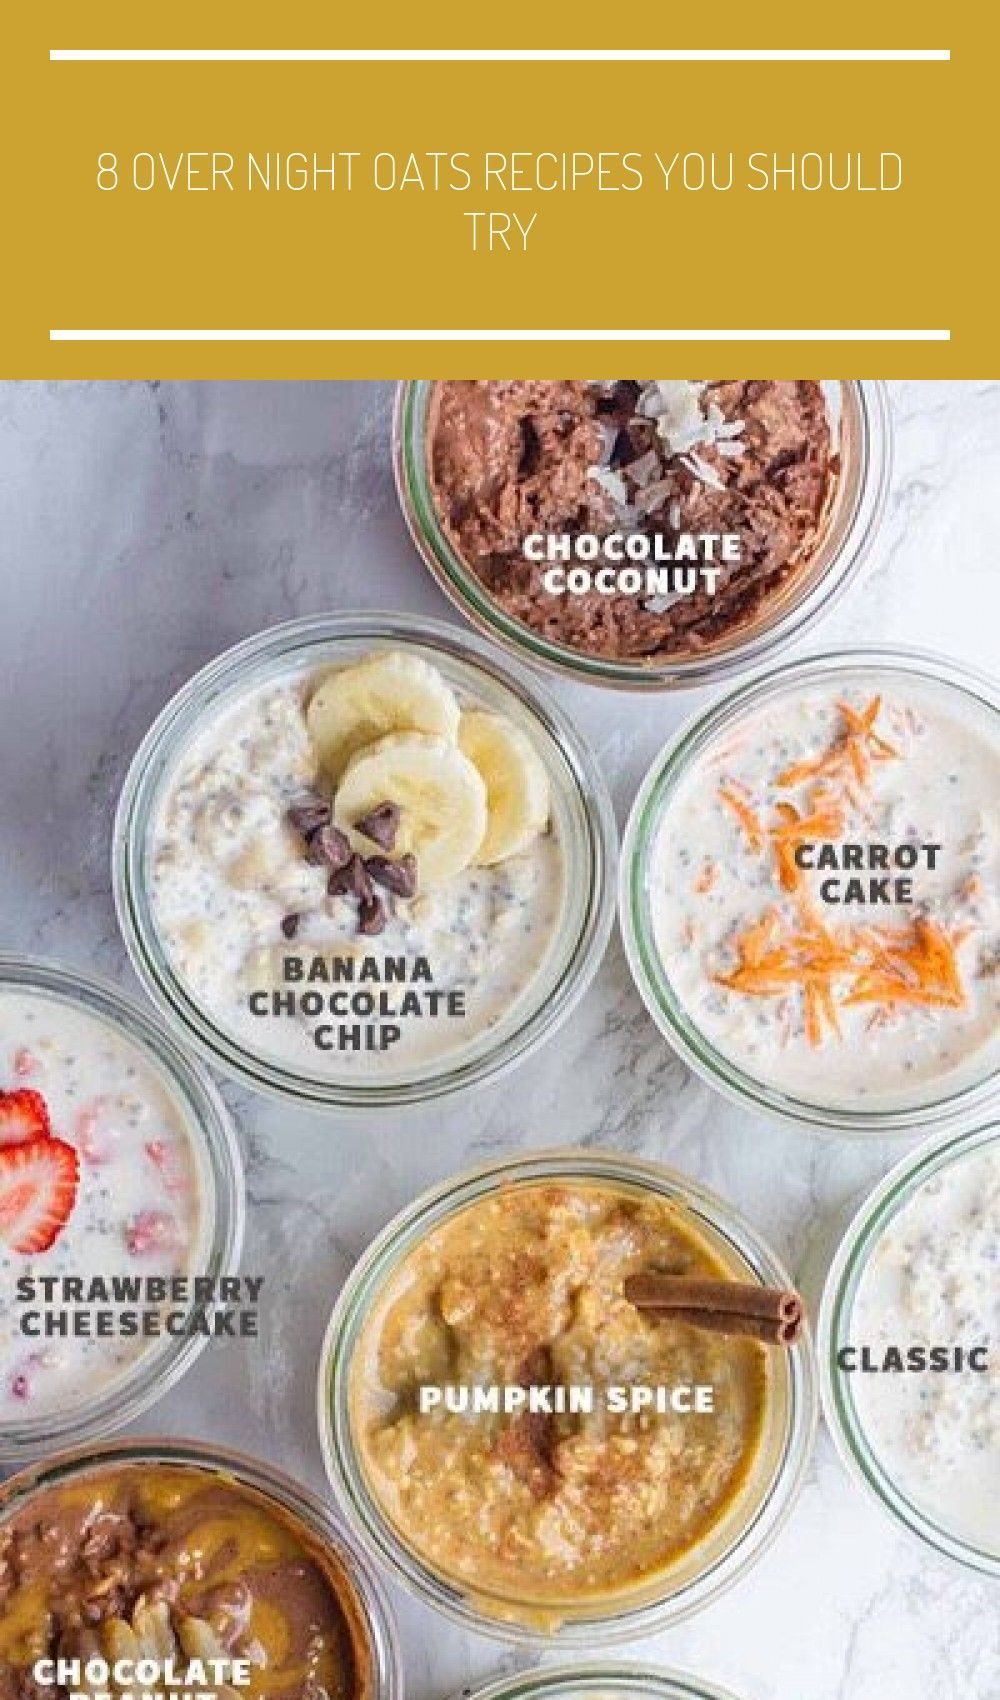 8 Over Night Oats Recipes You Should Try #Health #Fitness #Musely #Tip #healthy vegetarian recipes b...